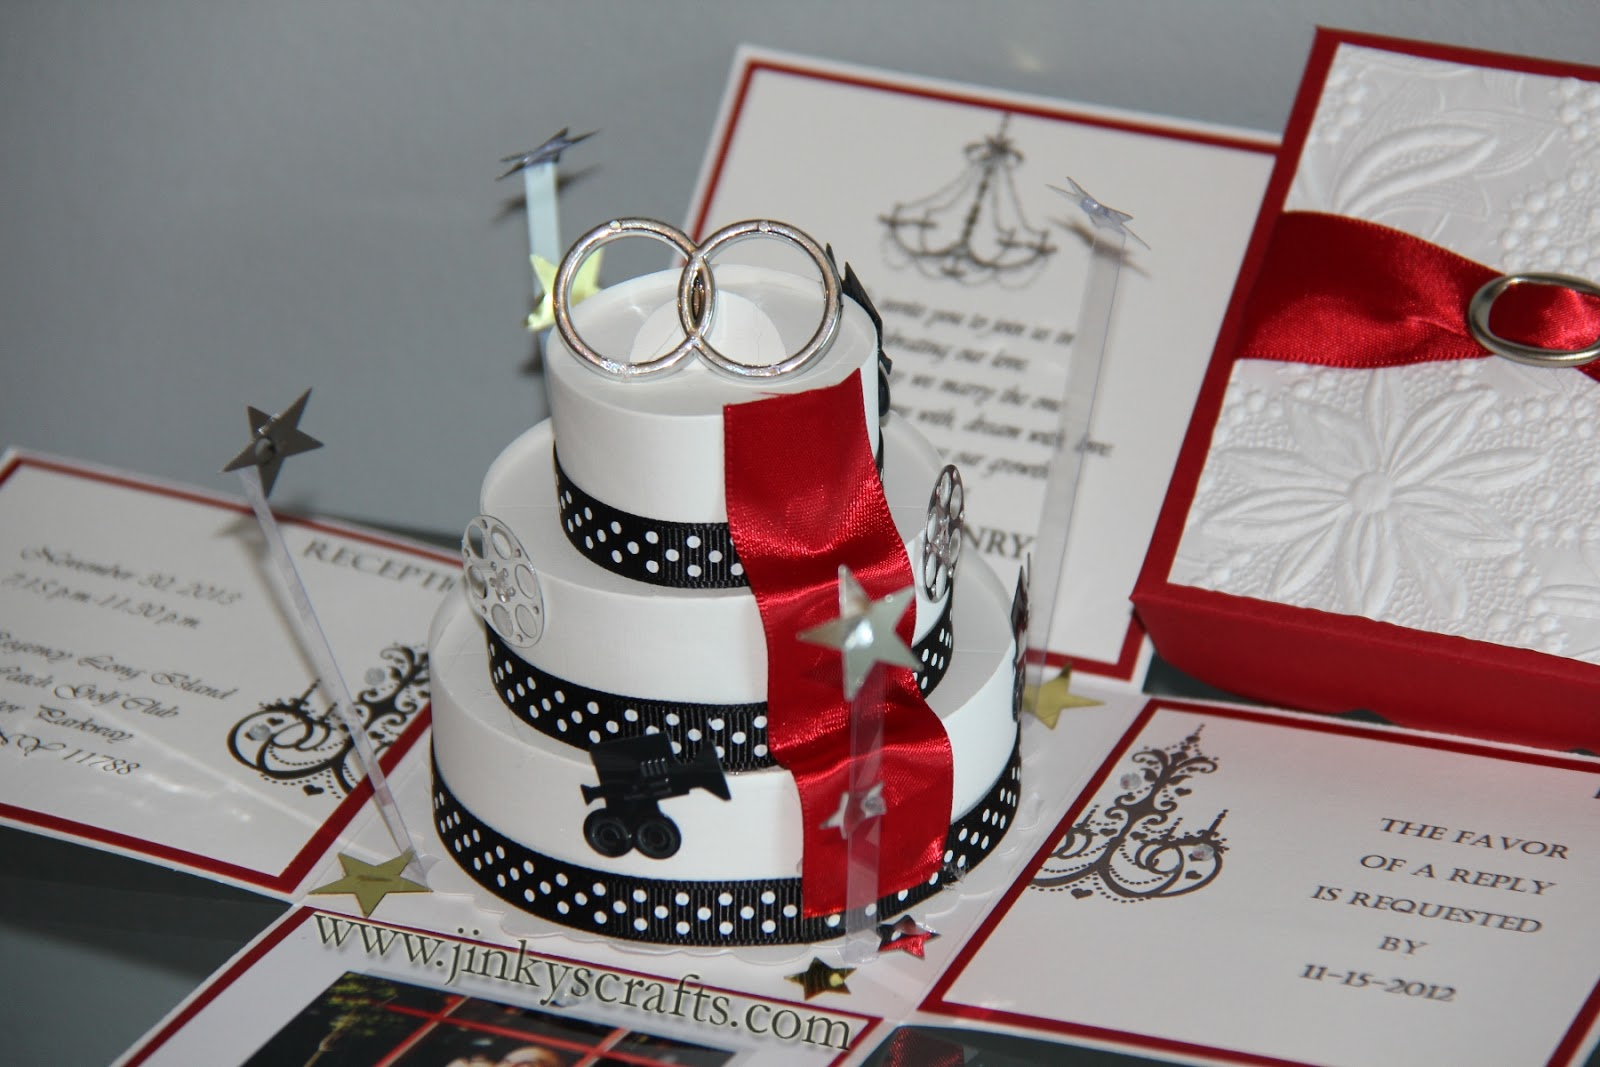 Different Wedding Invitations Ideas: Jinky's Crafts & Designs: Hollywood Themed Wedding Invitations